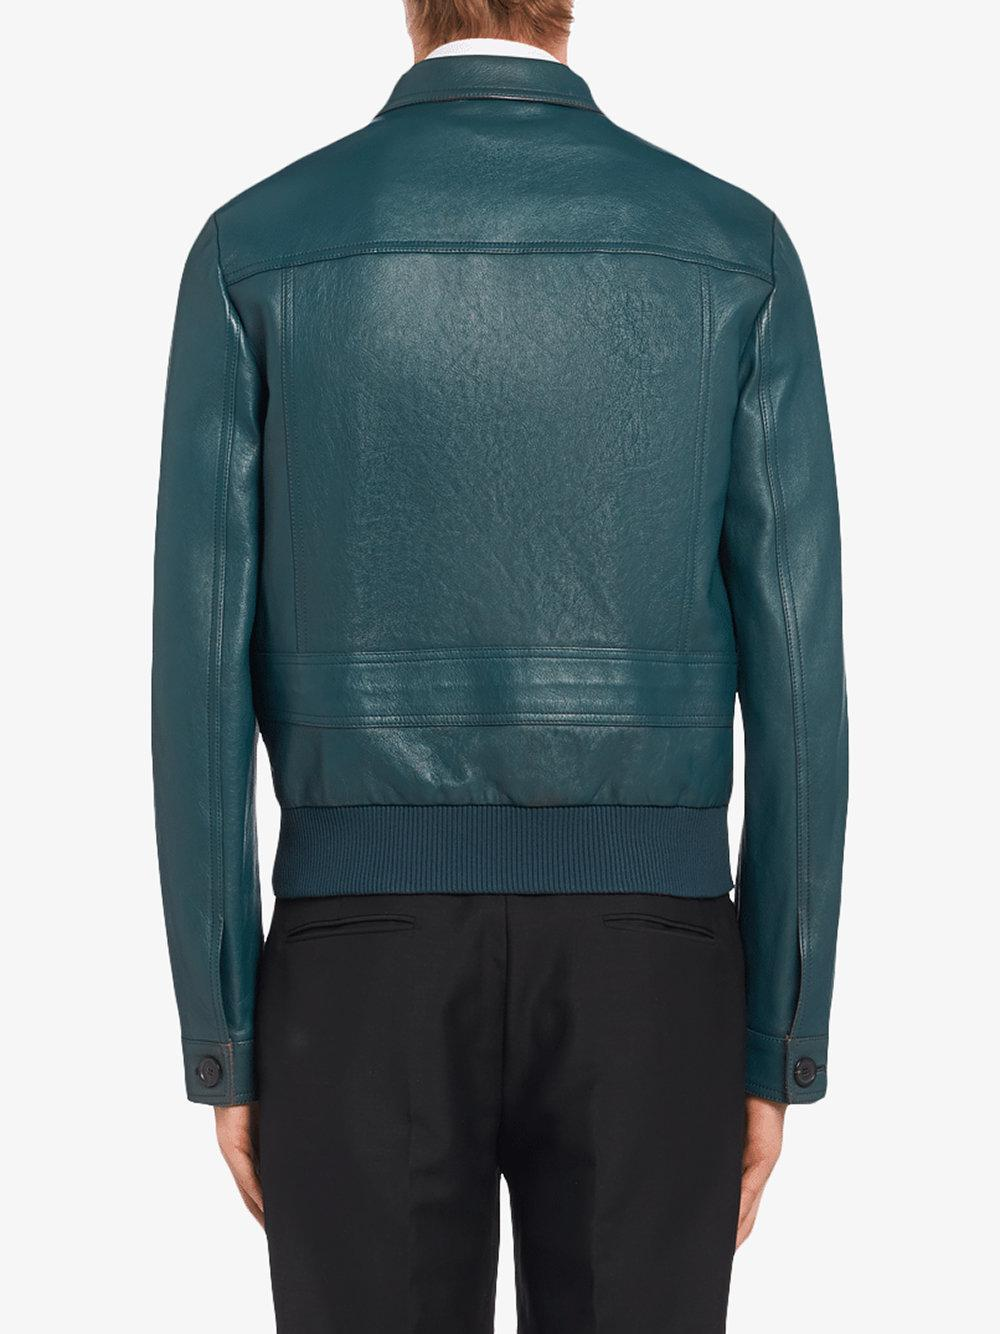 Prada Nappa Leather Boxy-fit Jacket in Blue for Men